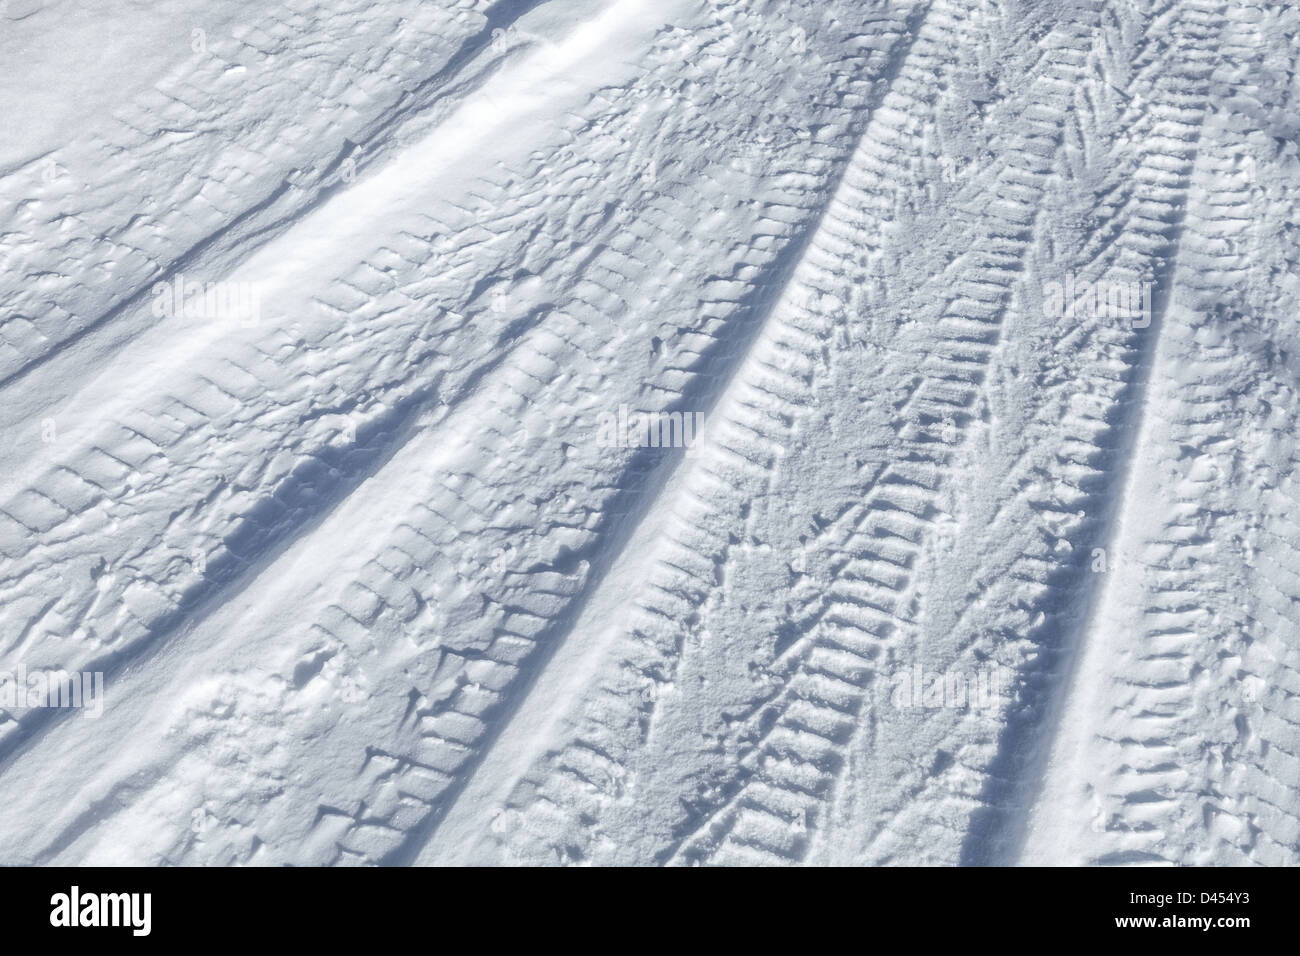 Background texture of tire tracks on road covered with snow - Stock Image